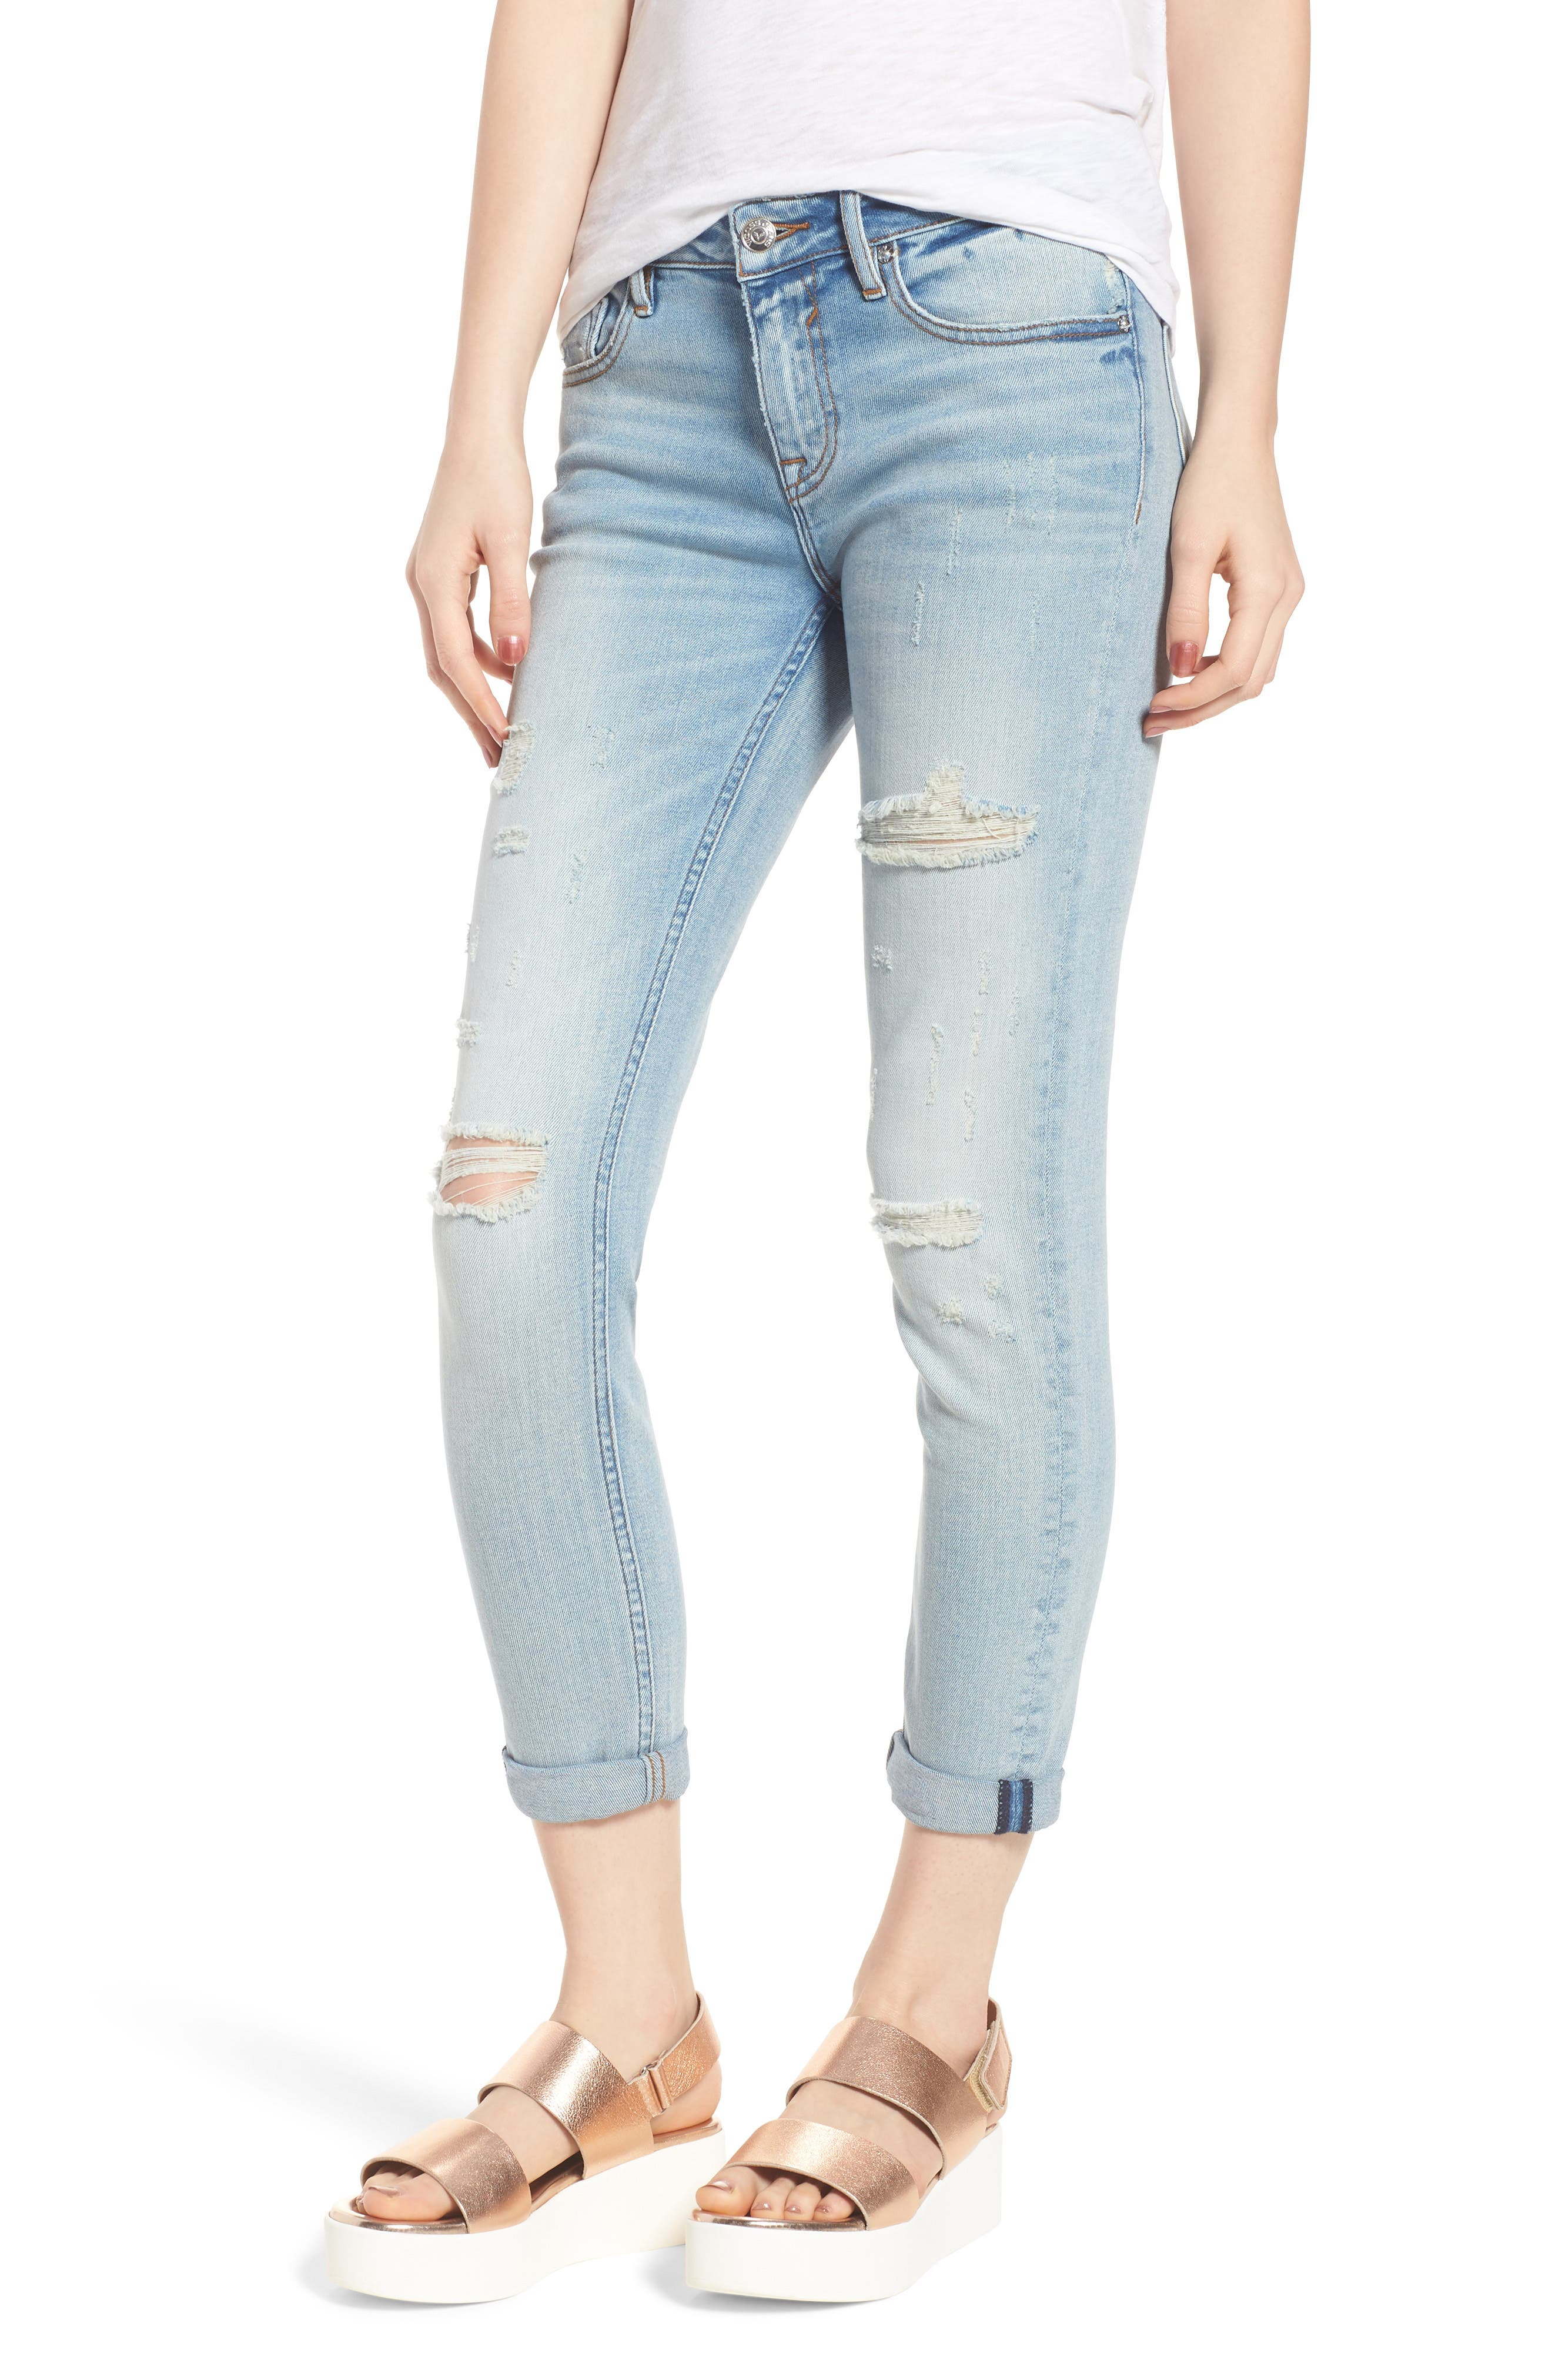 Thompson Tomboy Distressed Skinny Jeans,                         Main,                         color, Light Wash